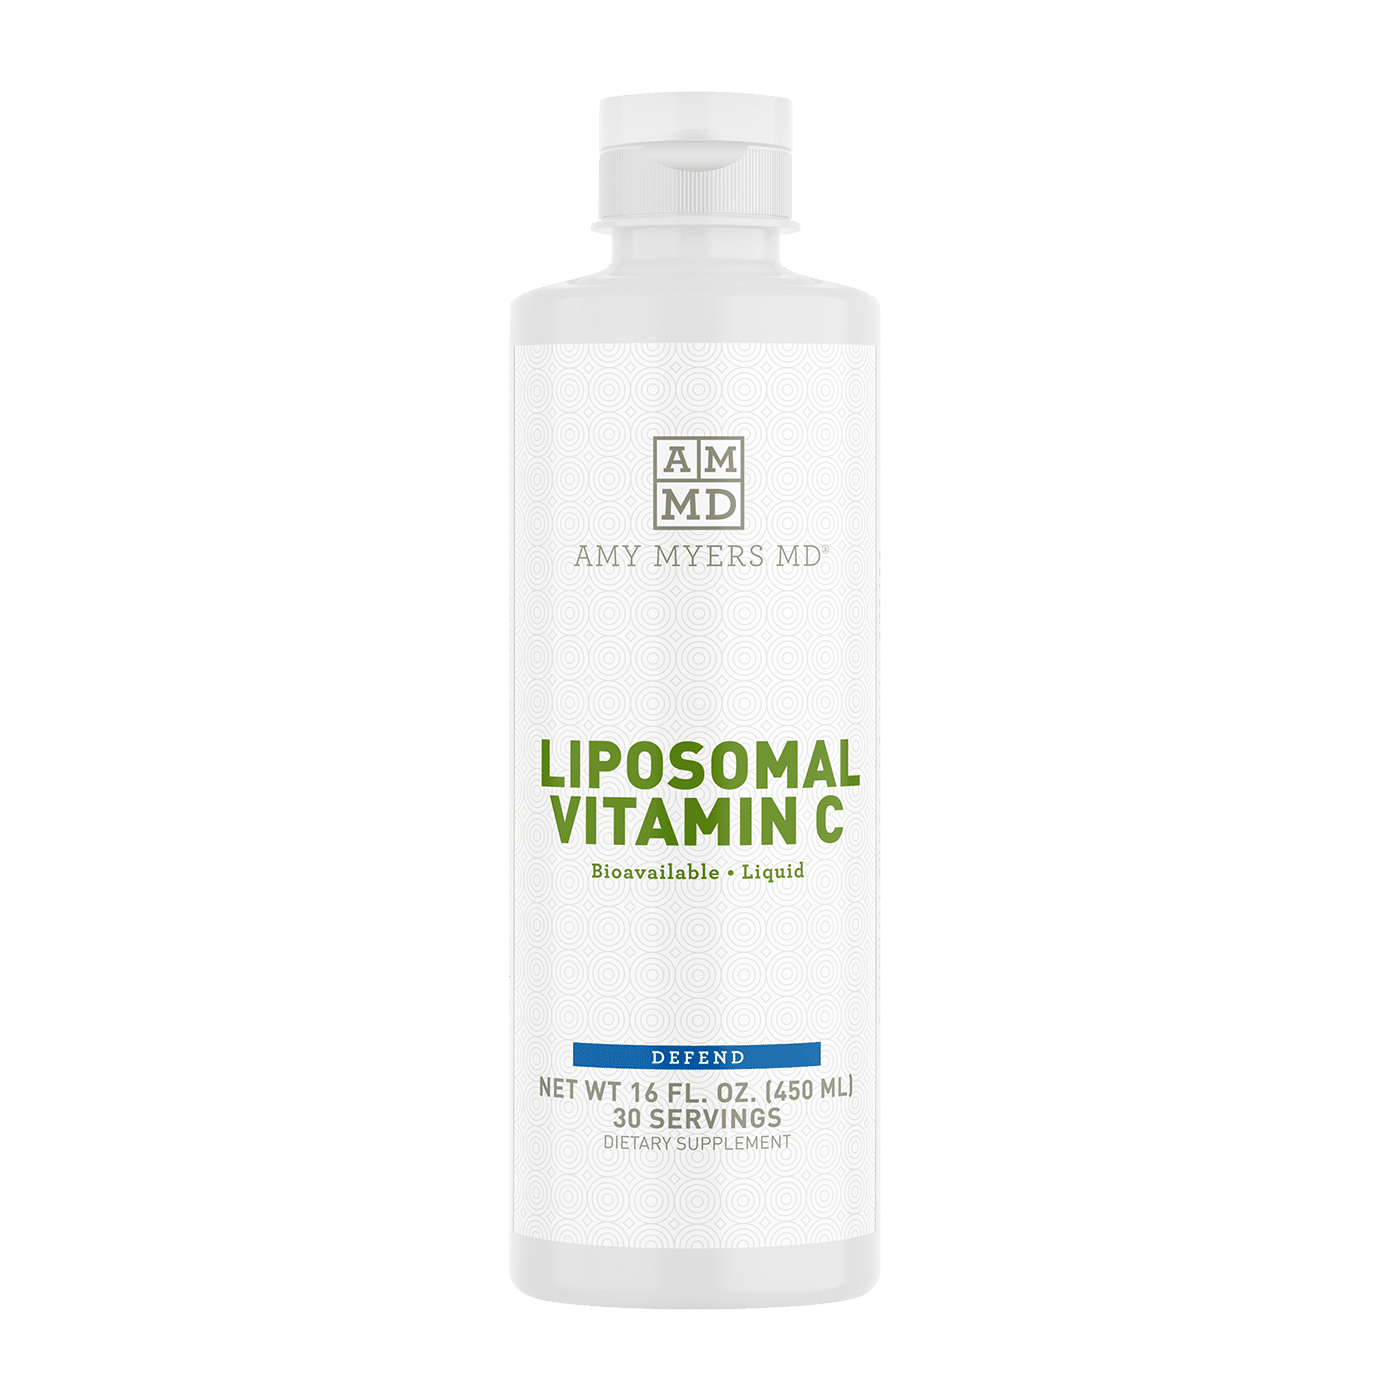 Liposomal Vitamin C from Amy Myers MD